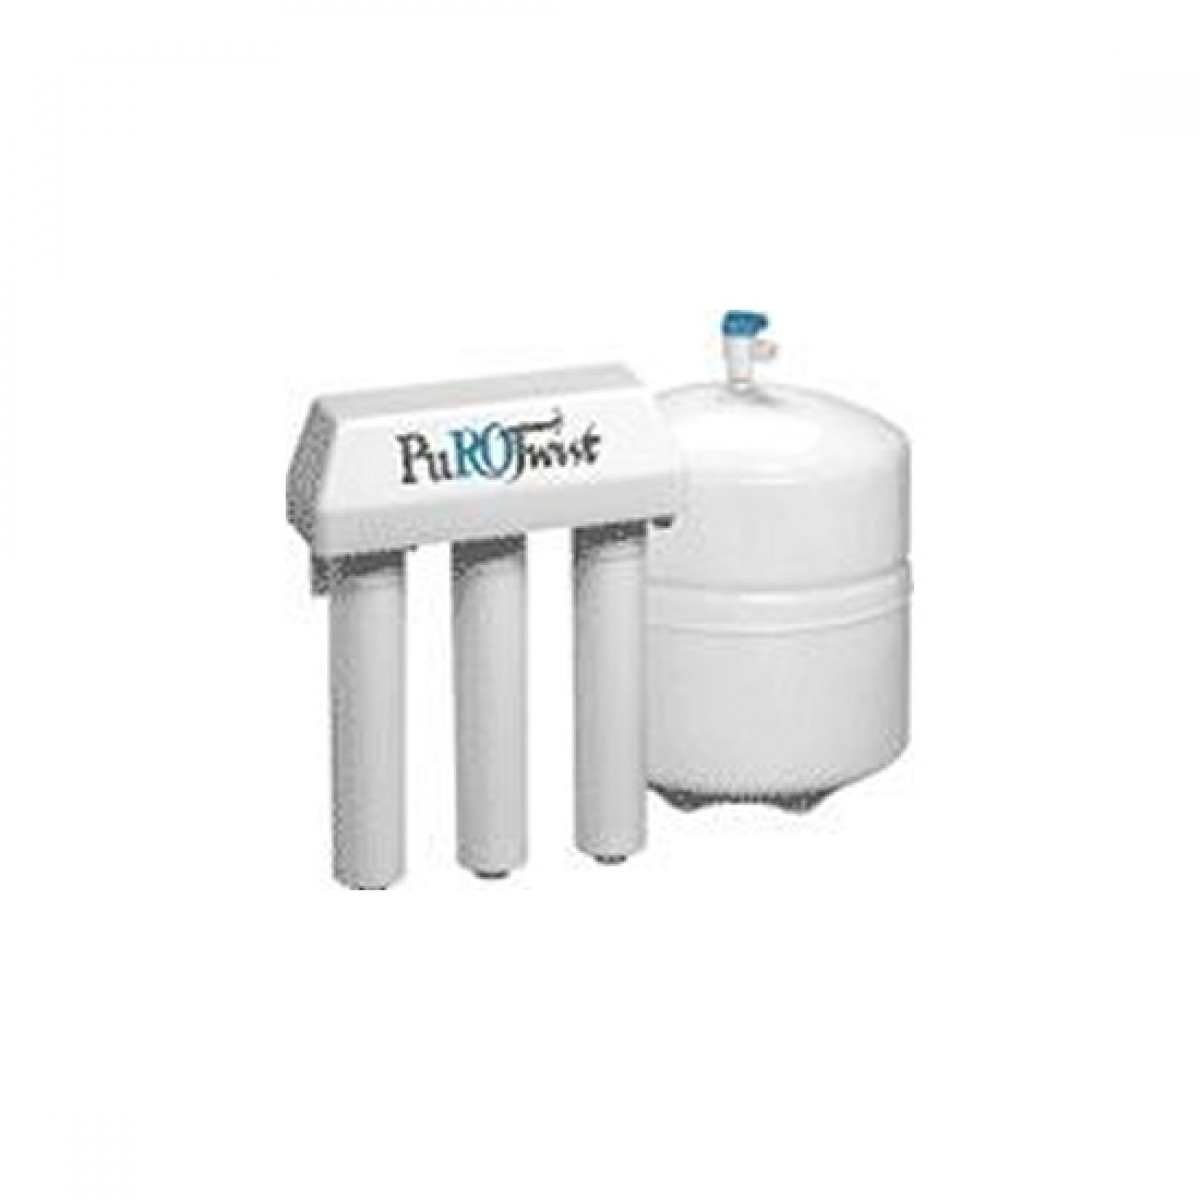 Purotwist 3000 Reverse Osmosis System